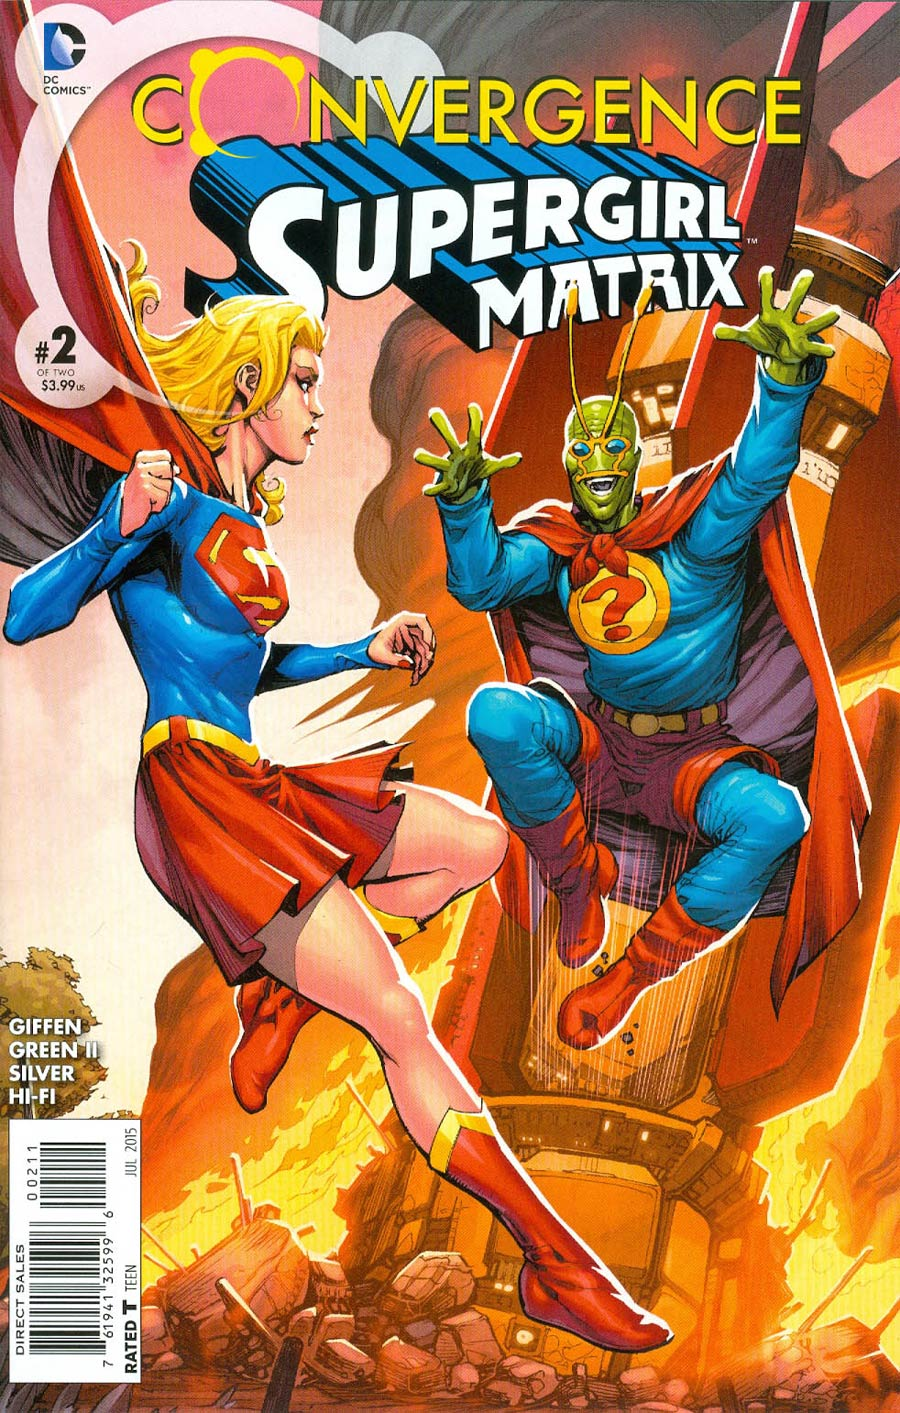 Convergence: Supergirl: Matrix #2